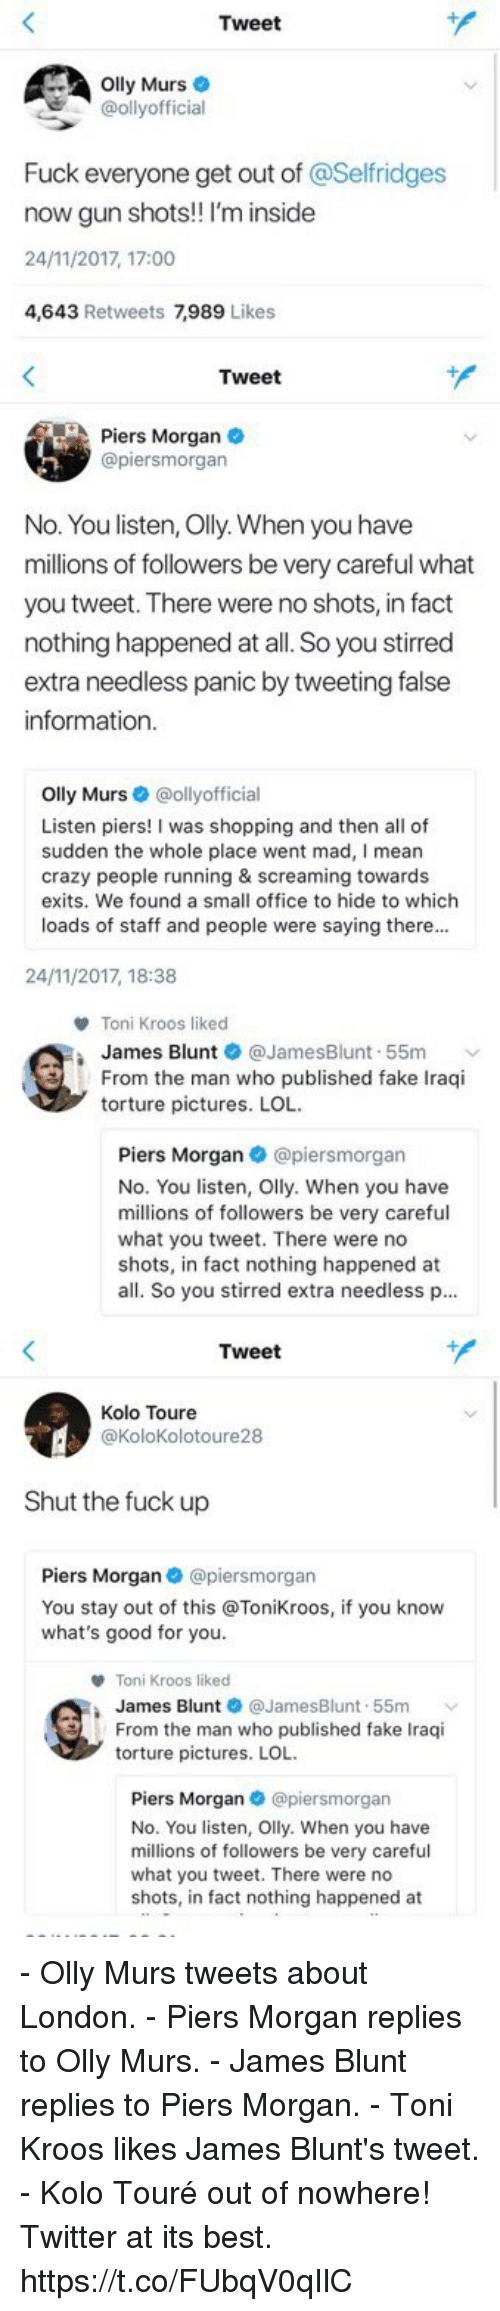 piers morgan: Tweet  lly Murs  @ollyofficial  Fuck everyone get out of @Selfridges  now gun shots! I'm inside  24/11/2017, 17:00  4,643 Retweets 7,989 Lik   Tweet  Piers Morgan  @piersmorgan  No. You listen, Olly. When you have  millions of followers be very careful what  you tweet. There were no shots, in fact  nothing happened at all. So you stirred  extra needless panic by tweeting false  information  Olly Murs·@ollyofficial  Listen piers! I was shopping and then all of  sudden the whole place went mad, I mean  crazy people running & screaming towards  exits. We found a small office to hide to which  loads of staff and people were saying there..  24/11/2017, 18:38   Toni Kroos liked  James Blunt ● @JamesBlunt-55m  From the man who published fake Iraqi  torture pictures. LOL  Piers Morgan@piersmorgan  No. You listen, Olly. When you have  millions of followers be very careful  what you tweet. There were no  shots, in fact nothing happened at  all. So you stirred extra needless p...   Tweet  Kolo Toure  @KoloKolotoure28  Shut the fuck up  Piers Morgan @piersmorgan  You stay out of this @Tonikroos, if you know  what's good for you.  Toni Kroos liked  James Blunt @JamesBlunt-55m ﹀  From the man who published fake Iraqi  torture pictures. LOL  Piers Morgan @piersmorgan  No. You listen, Olly. When you have  millions of followers be very careful  what you tweet. There were no  shots, in fact nothing happened at - Olly Murs tweets about London. - Piers Morgan replies to Olly Murs. - James Blunt replies to Piers Morgan. - Toni Kroos likes James Blunt's tweet. - Kolo Touré out of nowhere!  Twitter at its best. https://t.co/FUbqV0qIlC